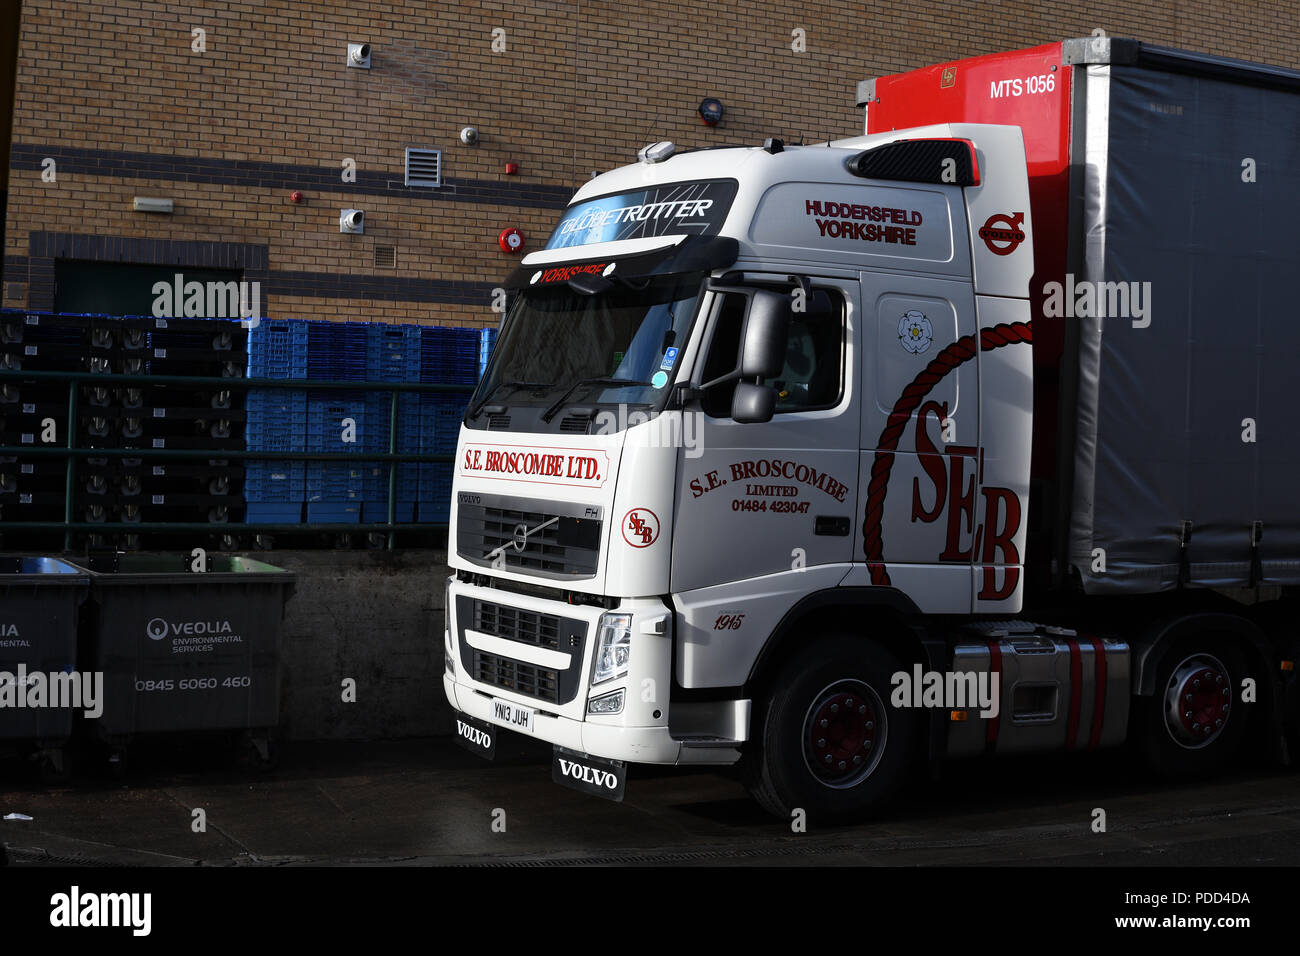 Huddersfield-based haulier makes a palletised delivery at an urban retail park Stock Photo